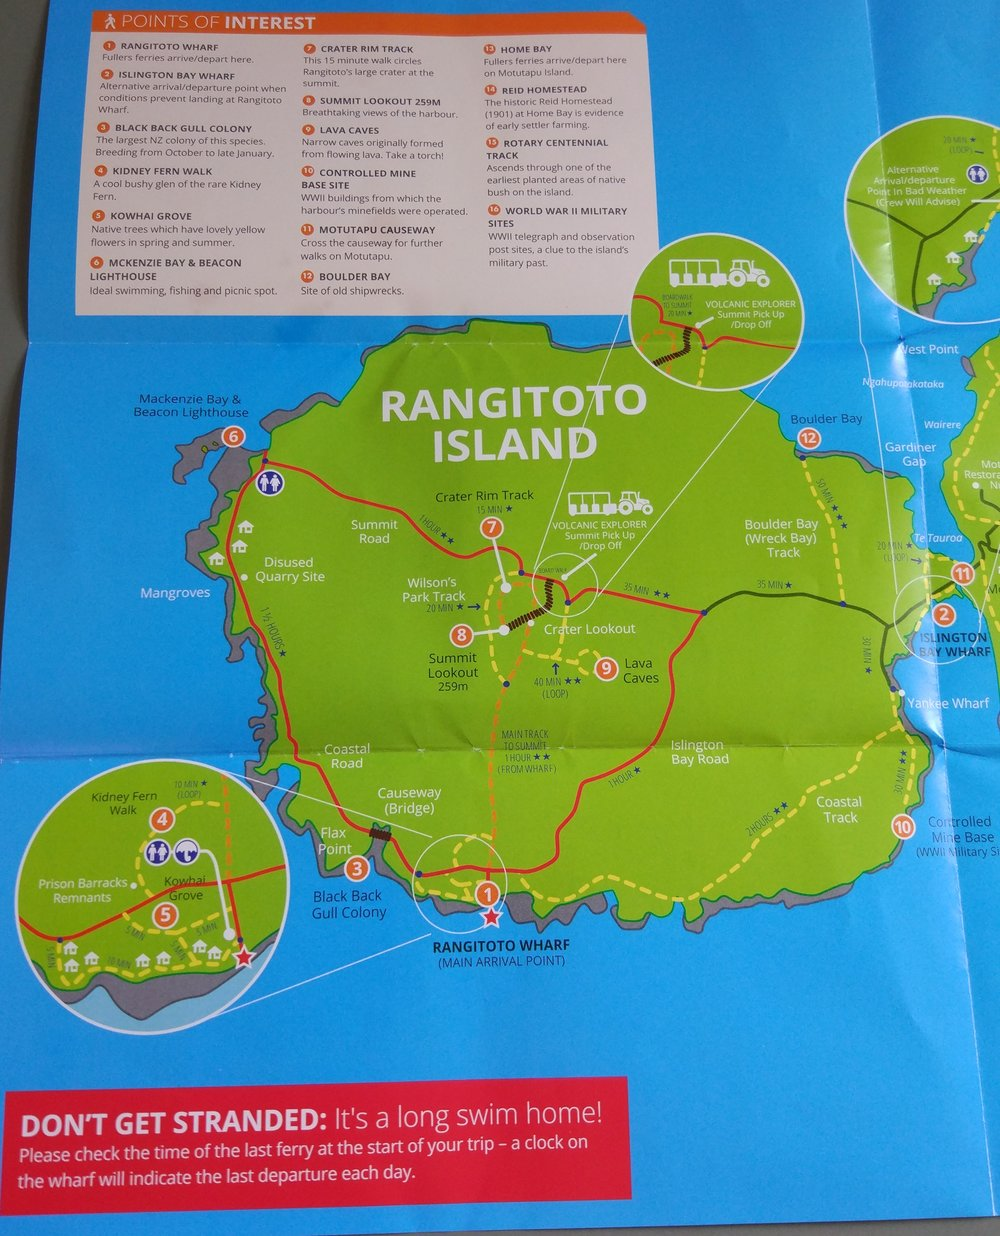 Rangitoto island map with walks